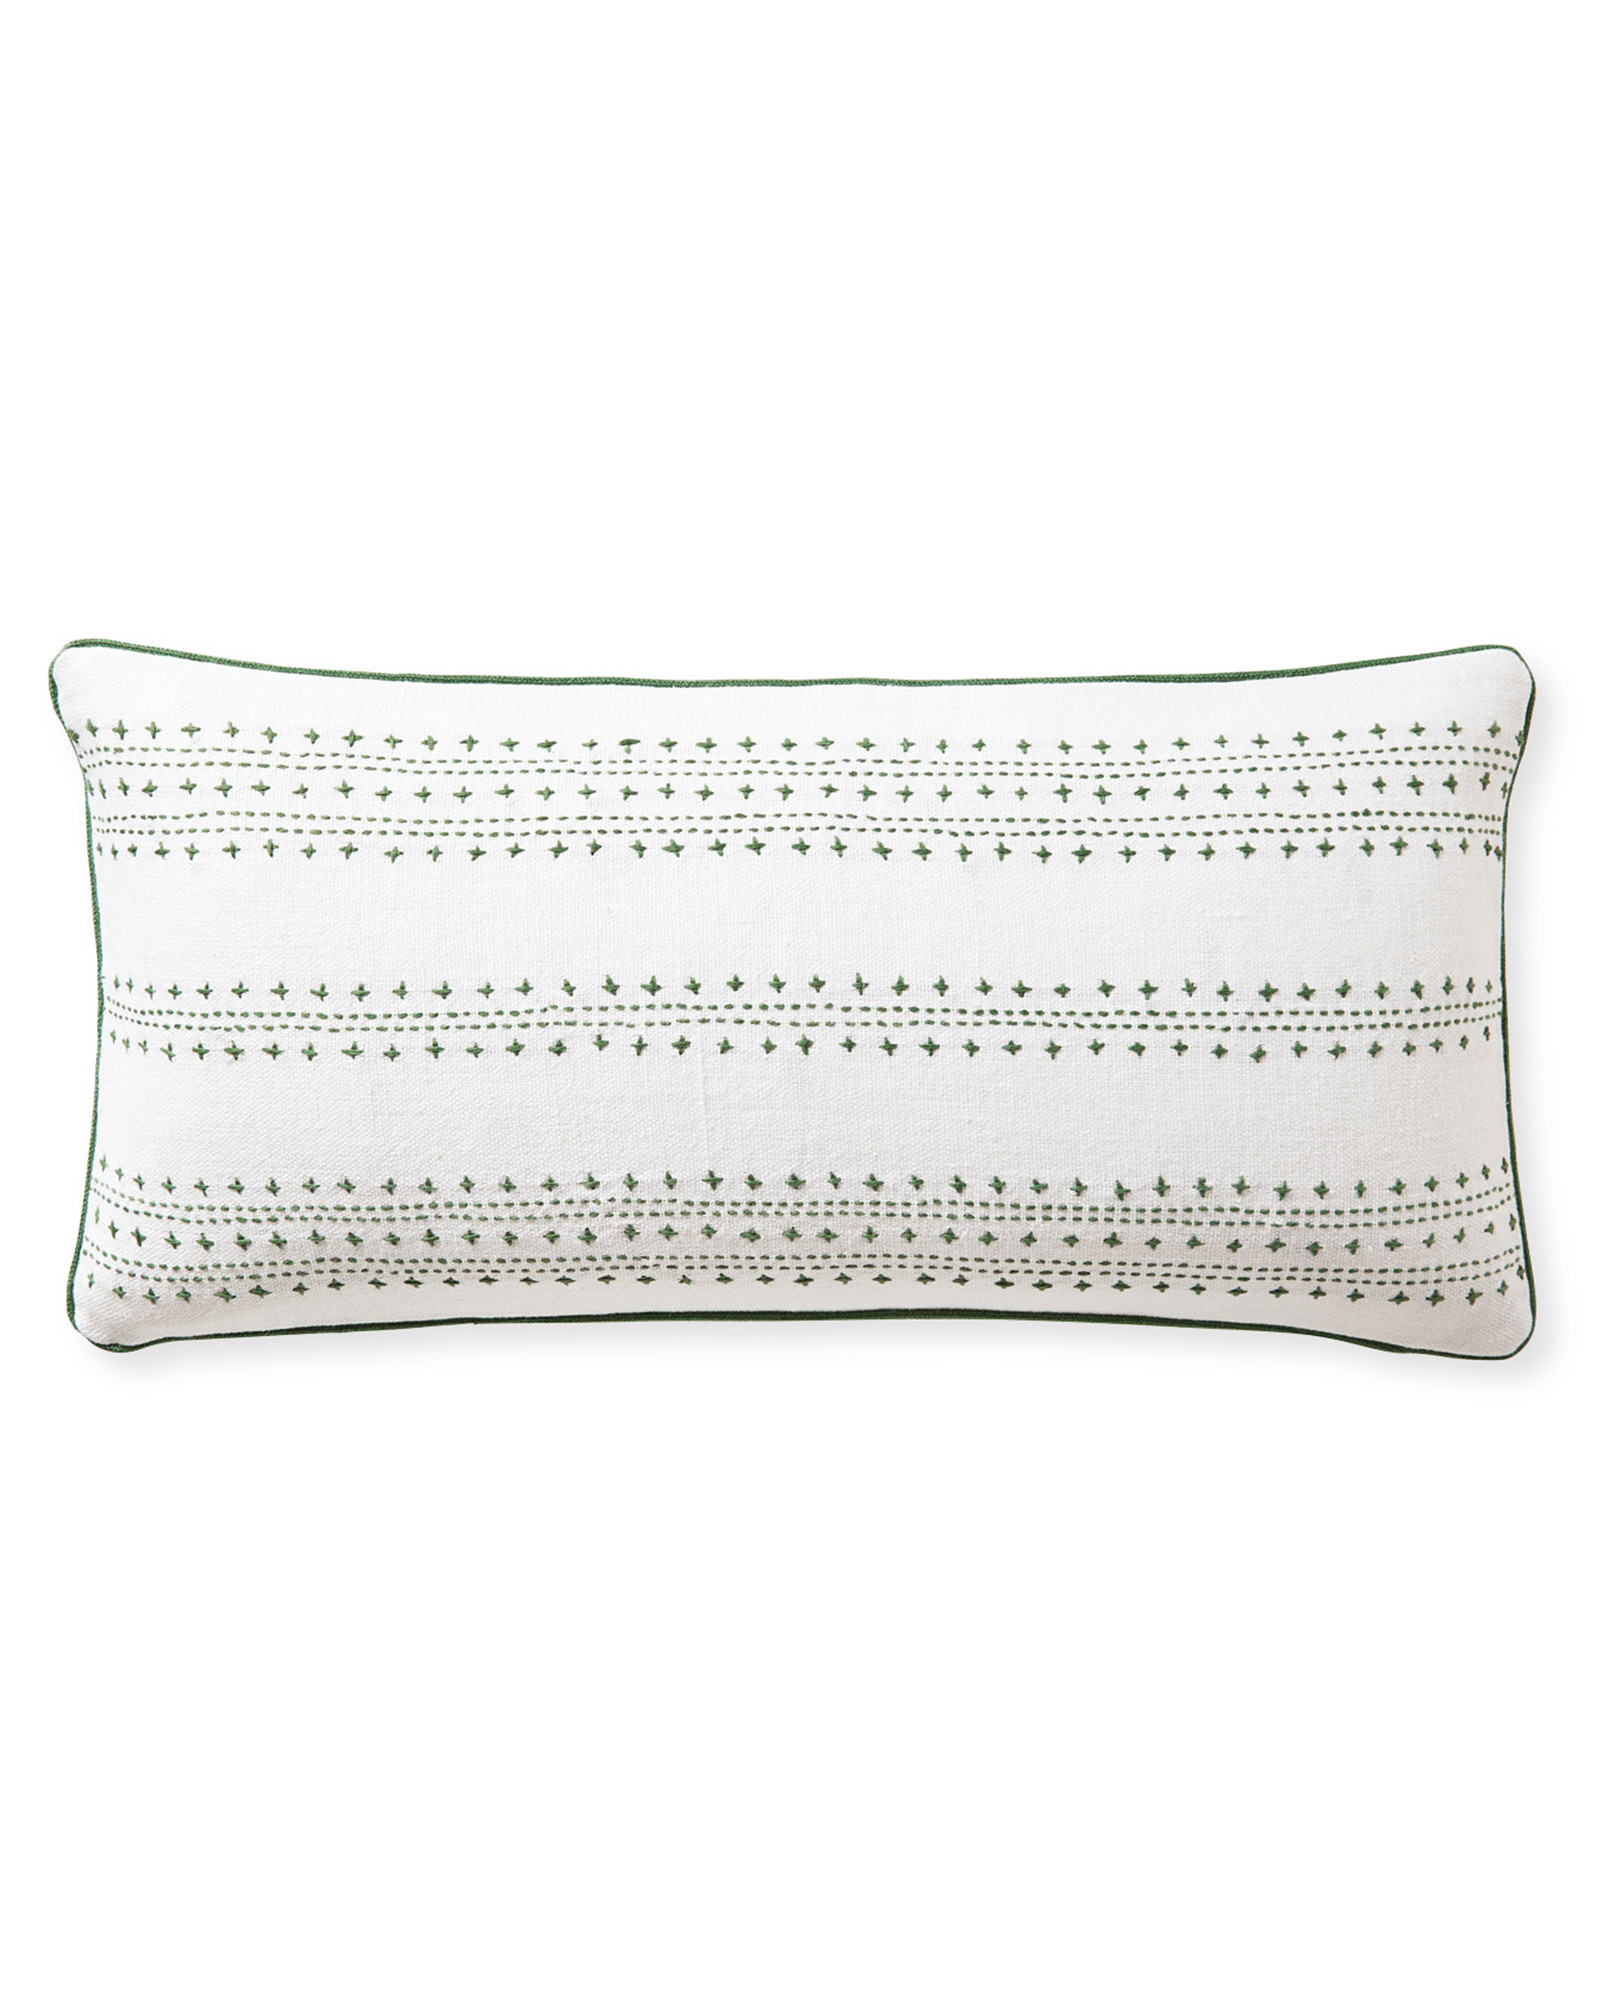 Catania Pillow Cover, Moss